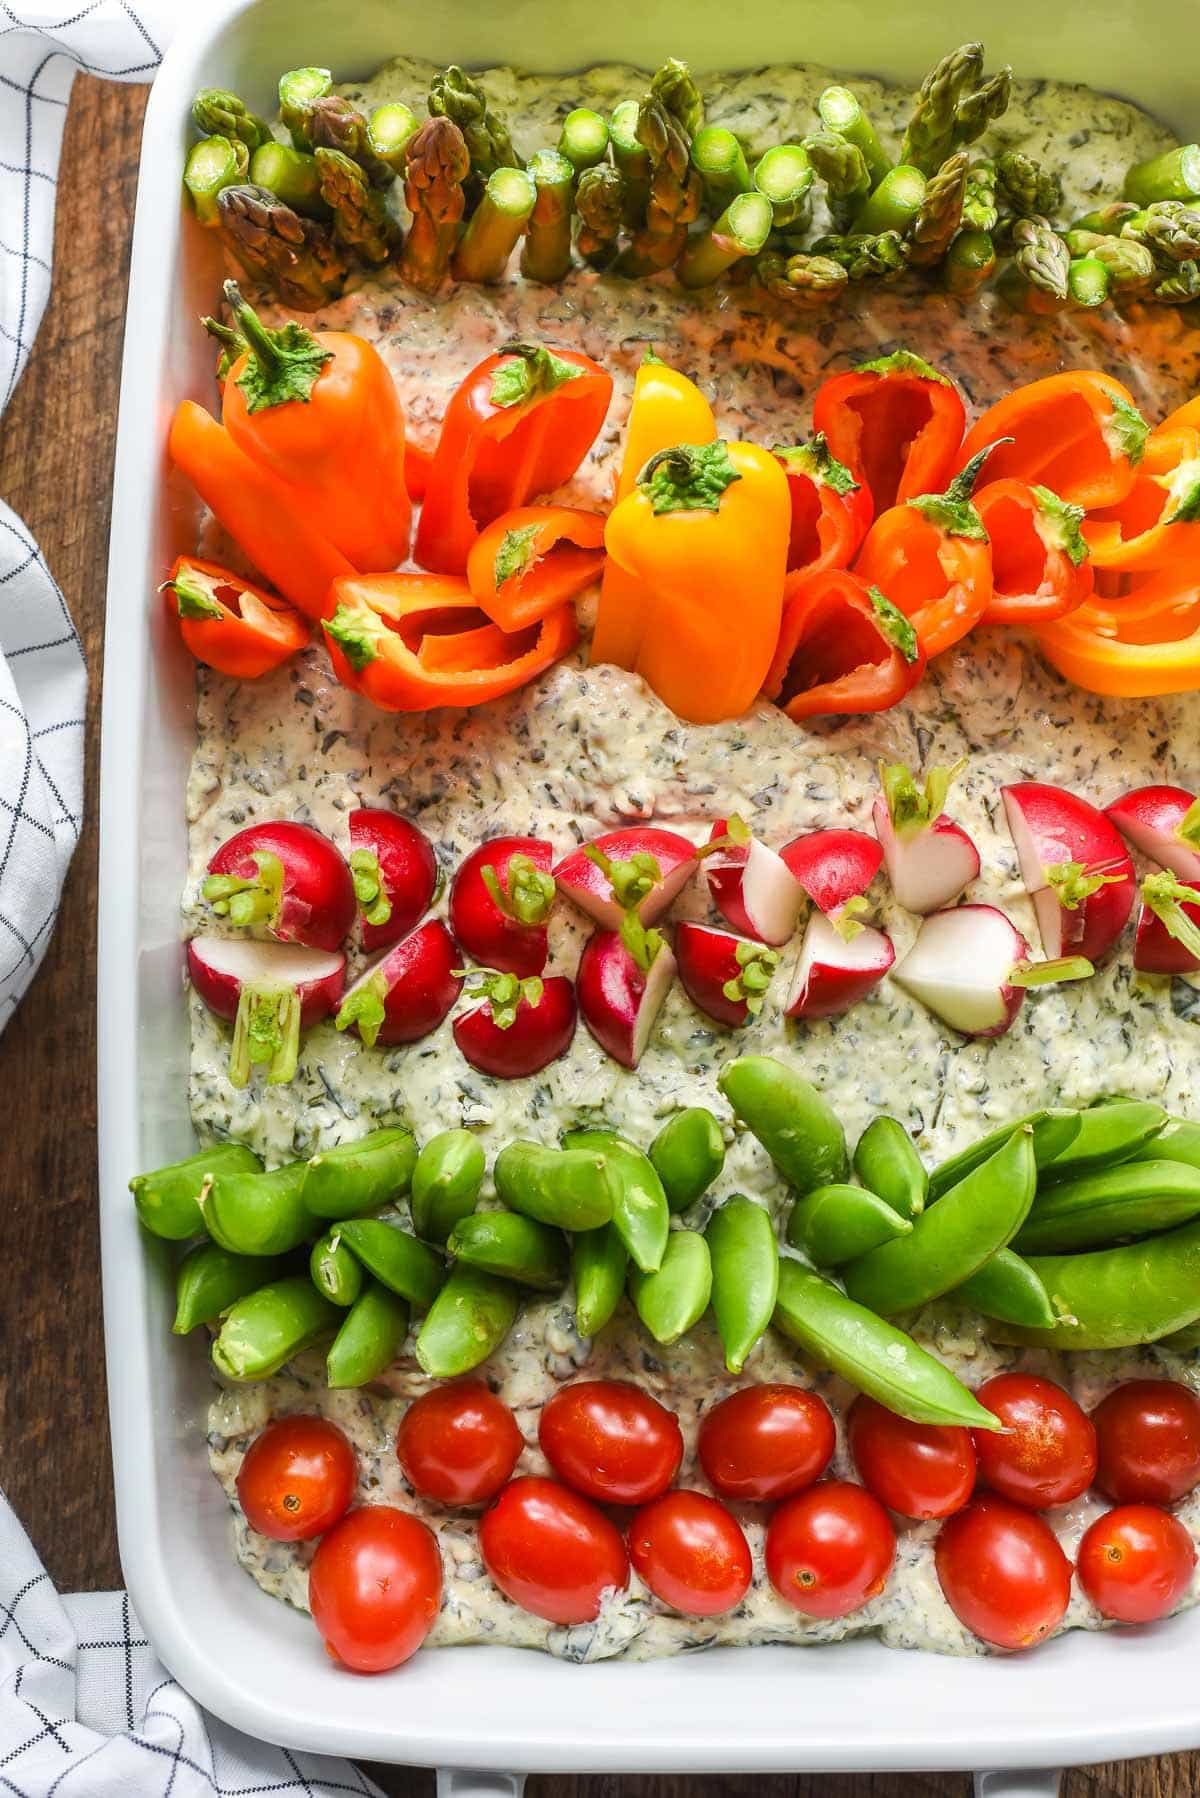 This Garden Veggie Dip is the perfect addition to a farm themed birthday party! Read on for tips on how to throw an easy, fun Farm Birthday!